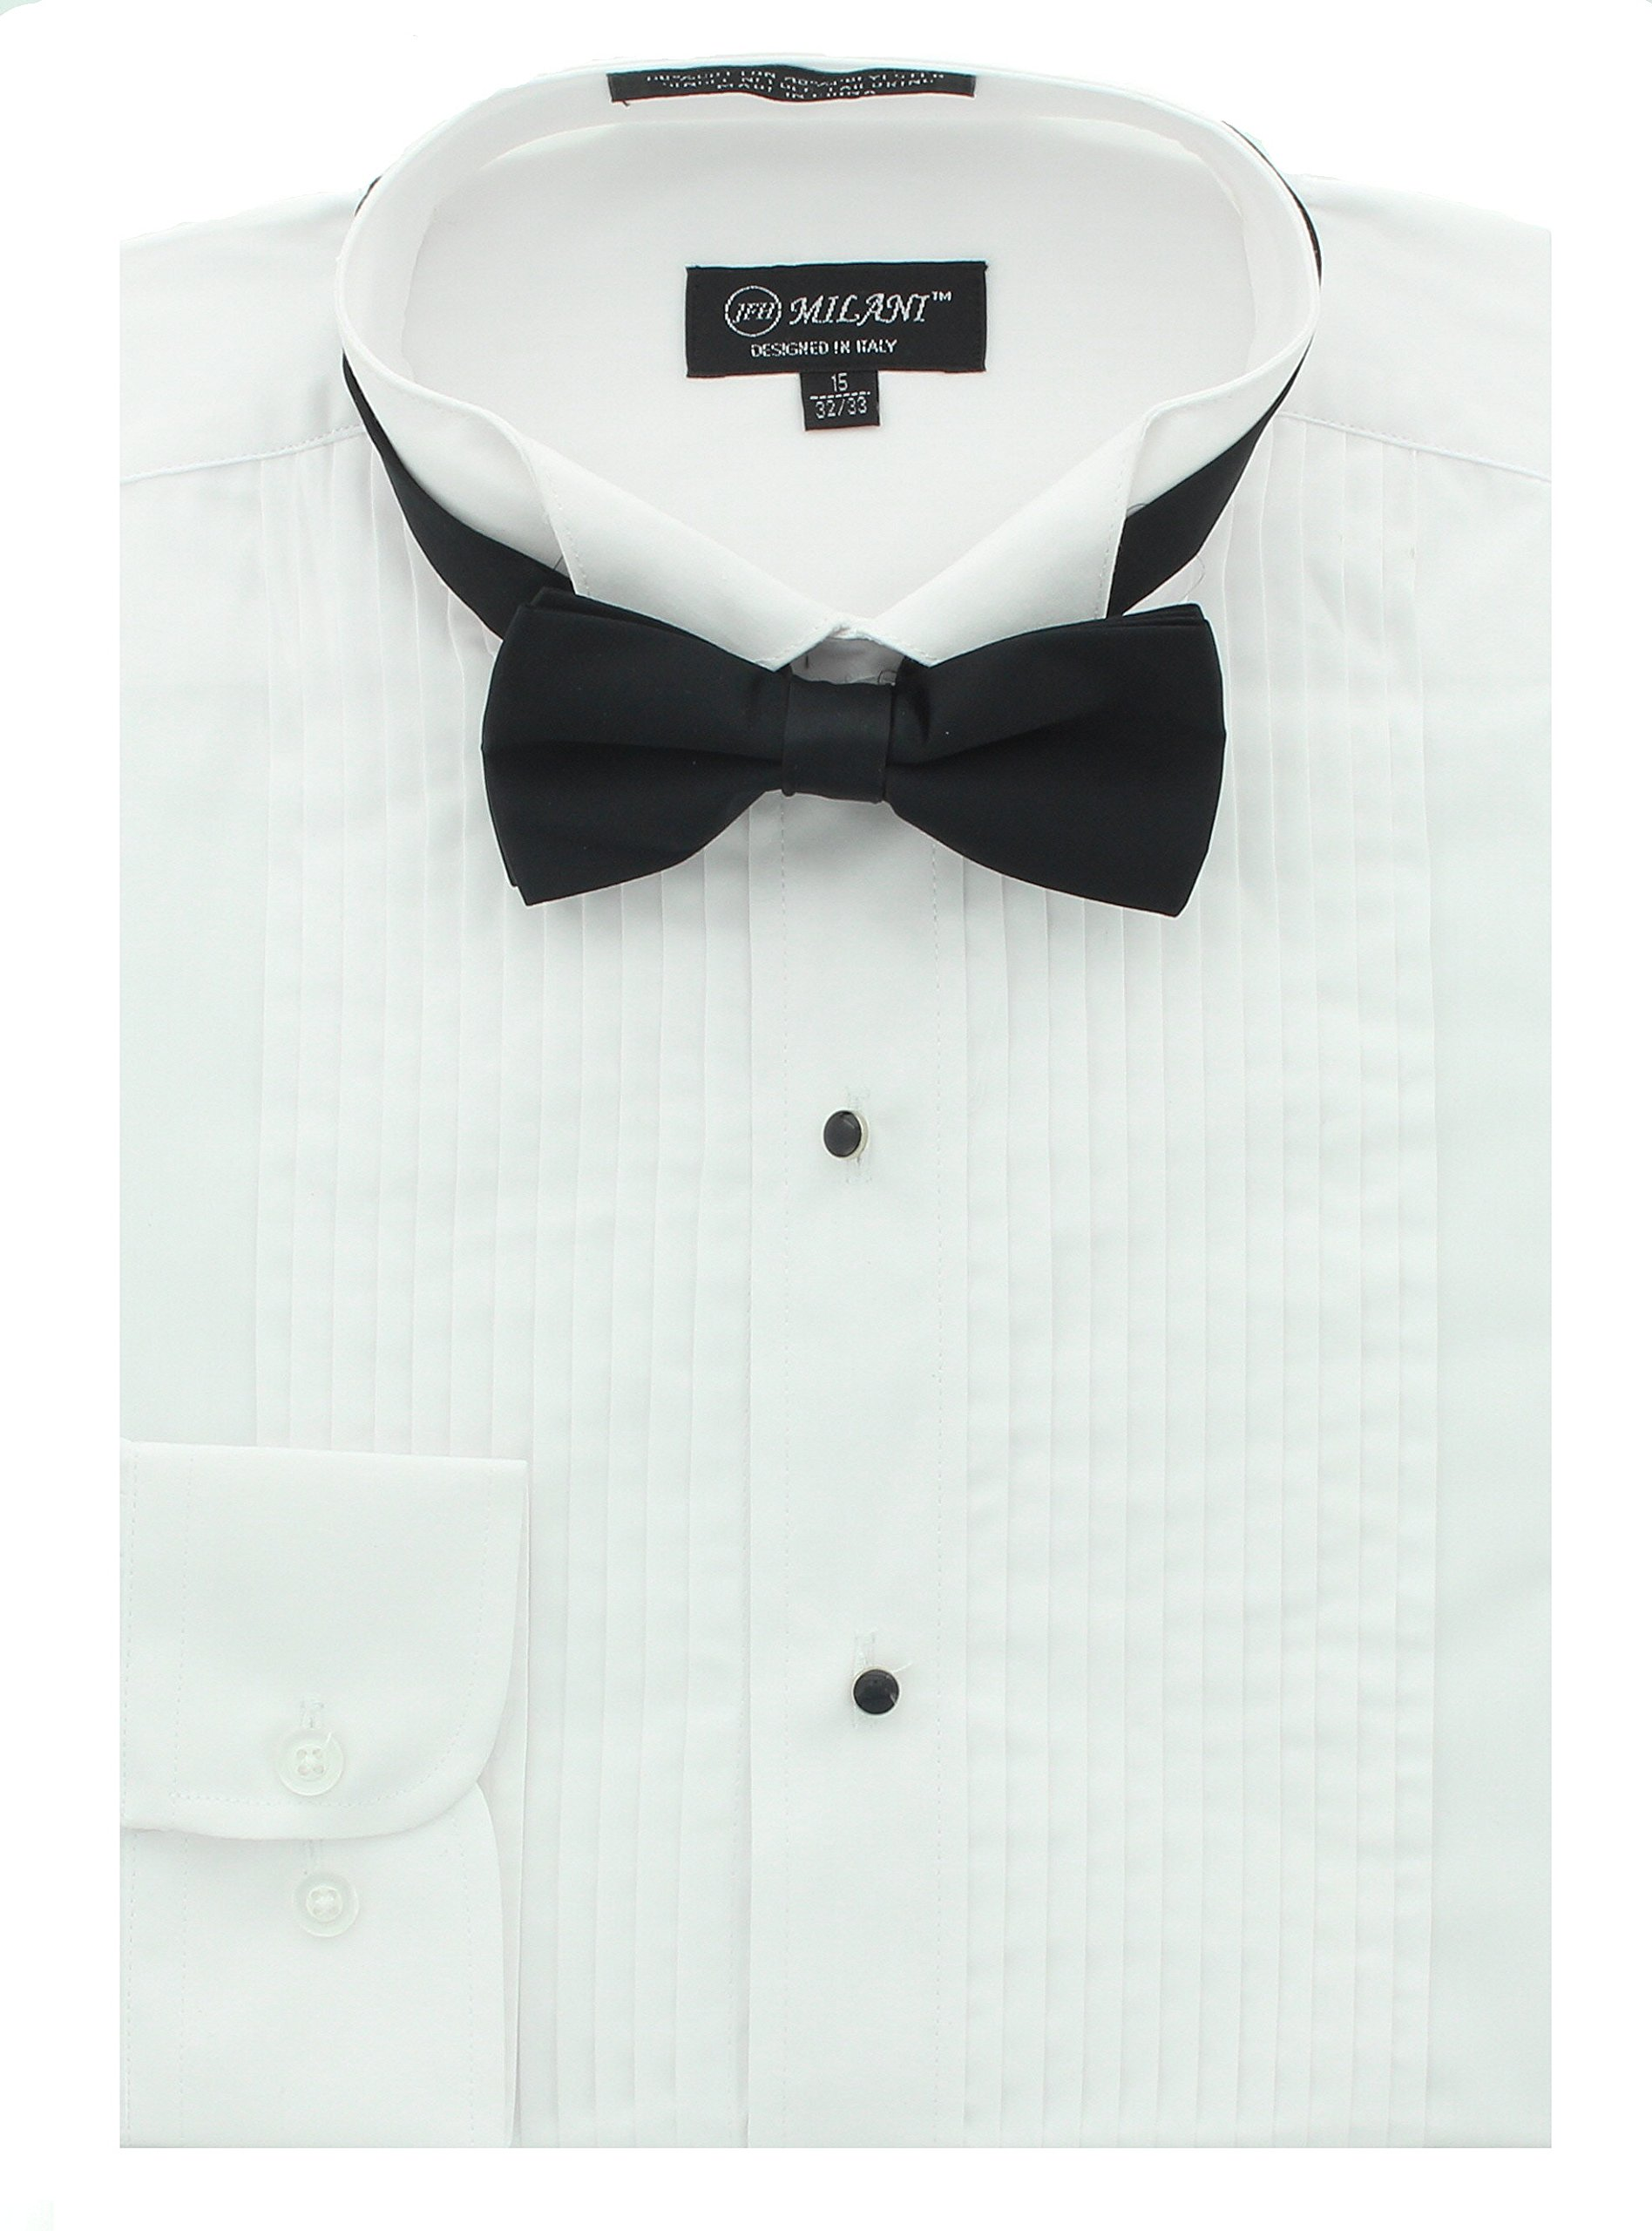 Milani Men's Tuxedo Shirt With Convertible Cuff And Bow Tie 16'', 34/35 White